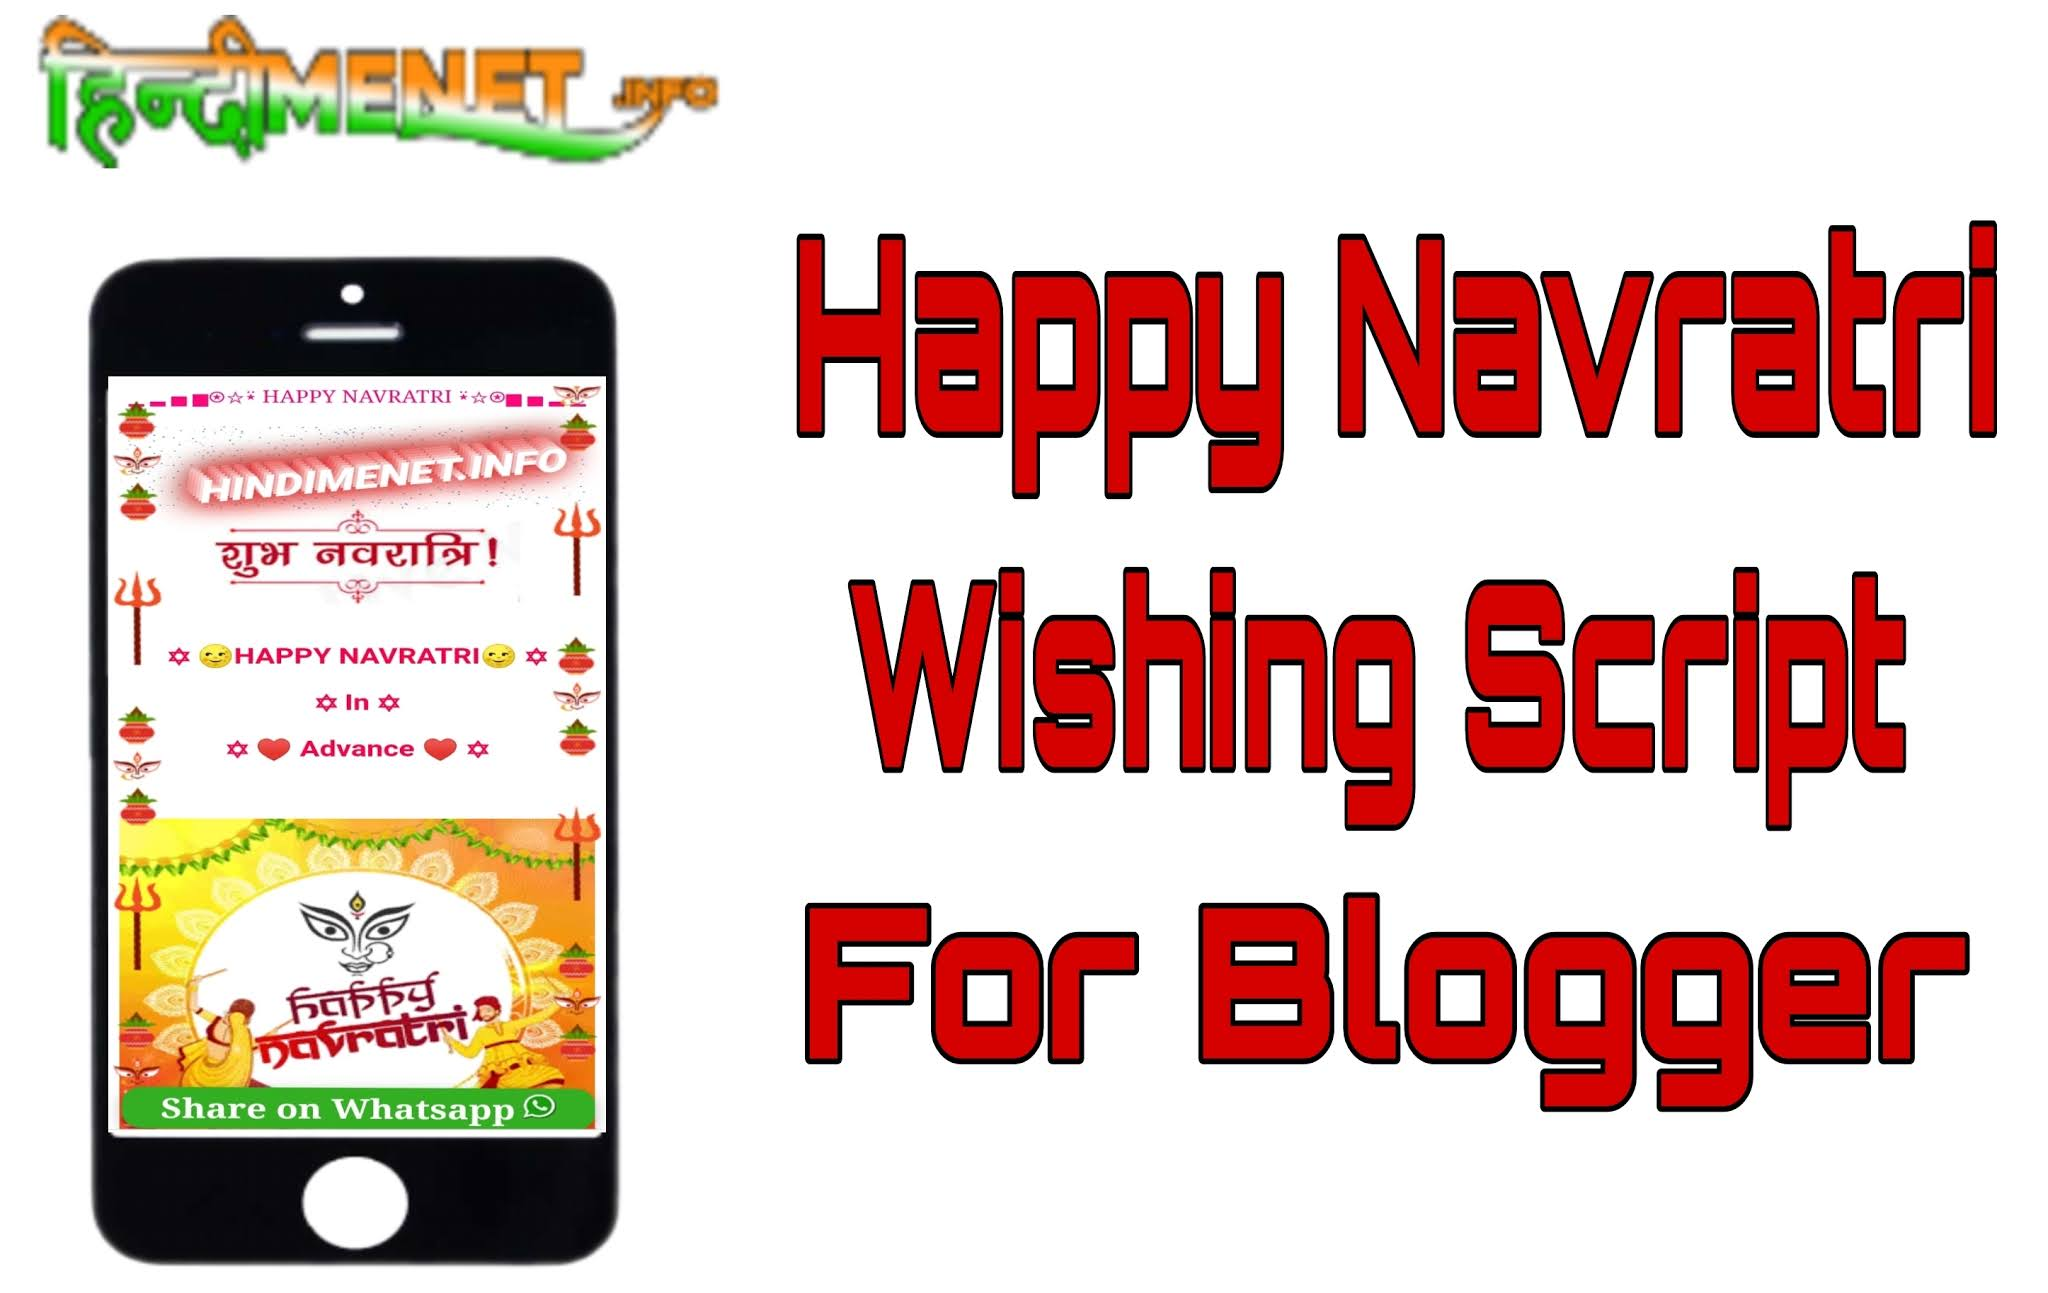 Navratri Wishing Script 2021 Free Download For Blogger